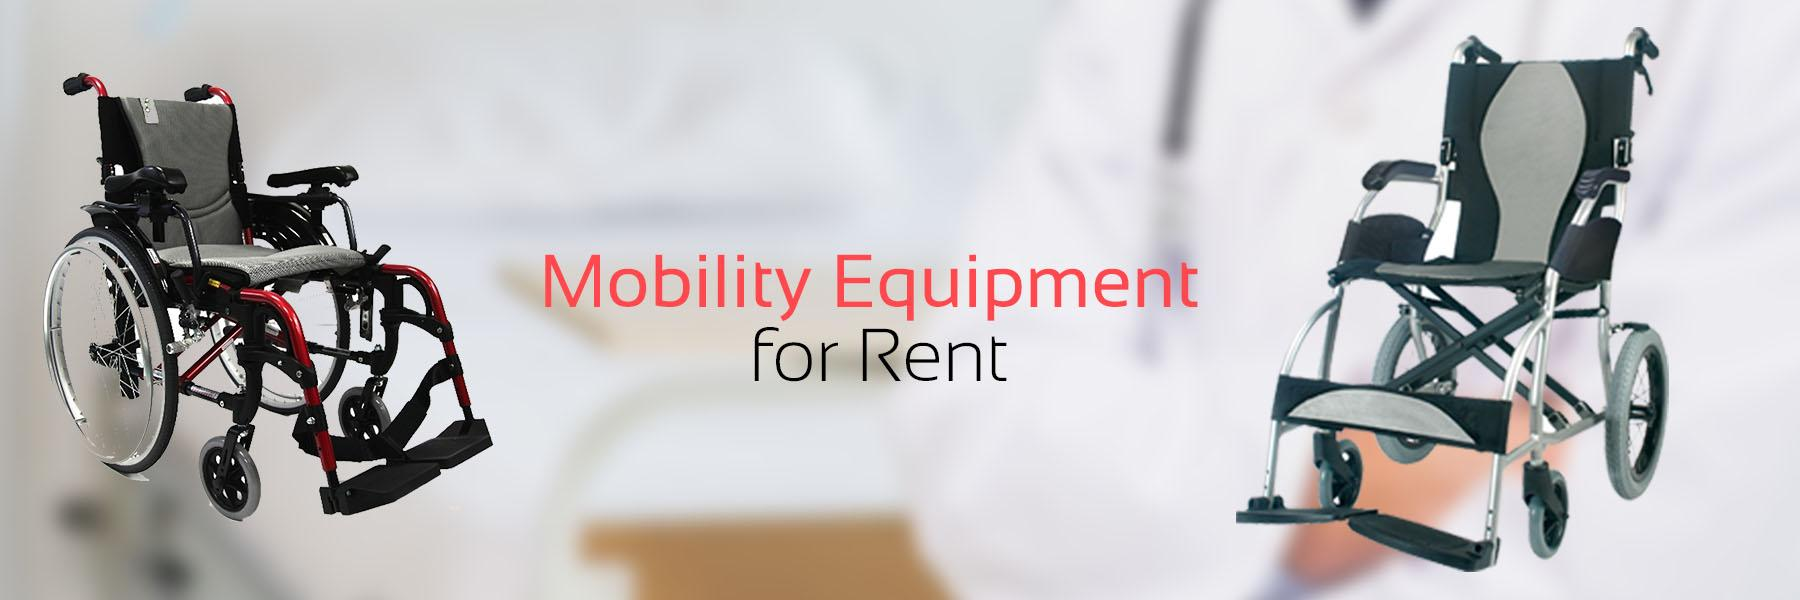 Mobility Equipment on Rent